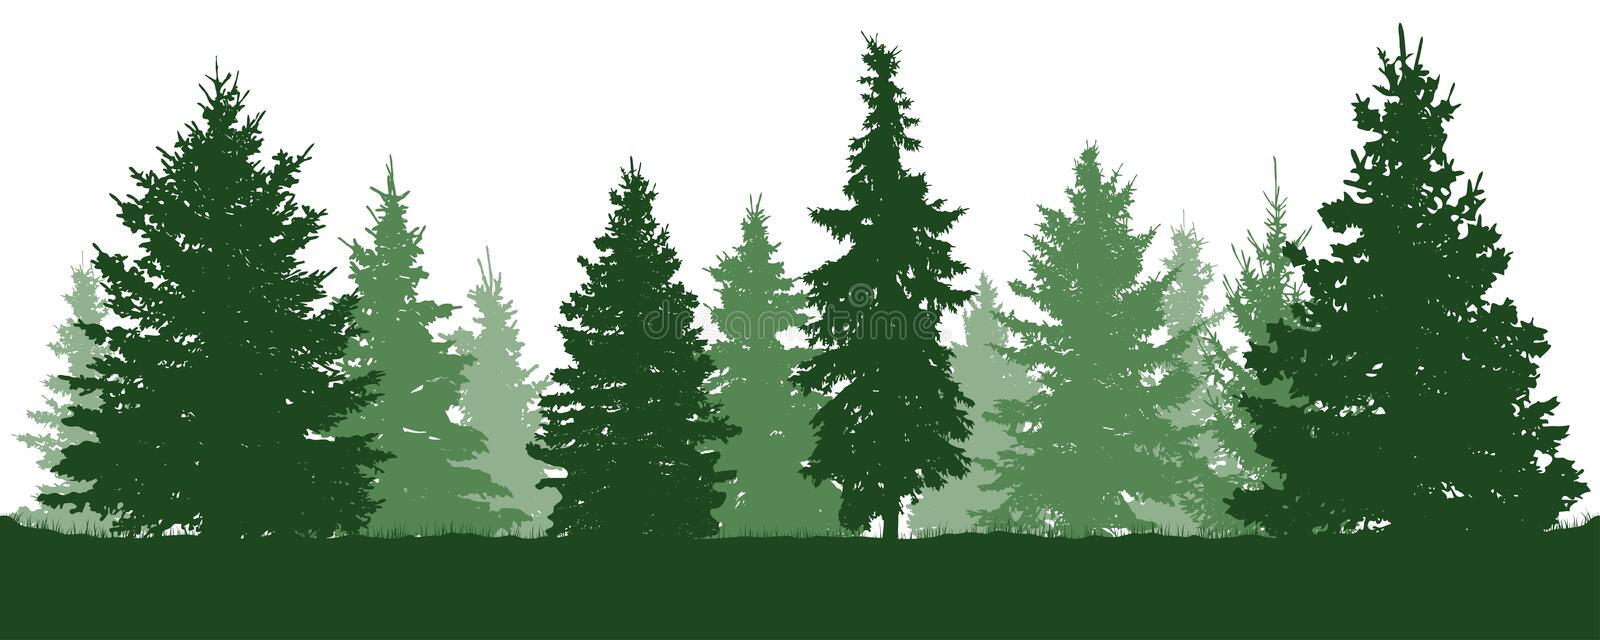 Forest fir trees silhouette. Coniferous green spruce. Vector on white background. royalty free stock photos